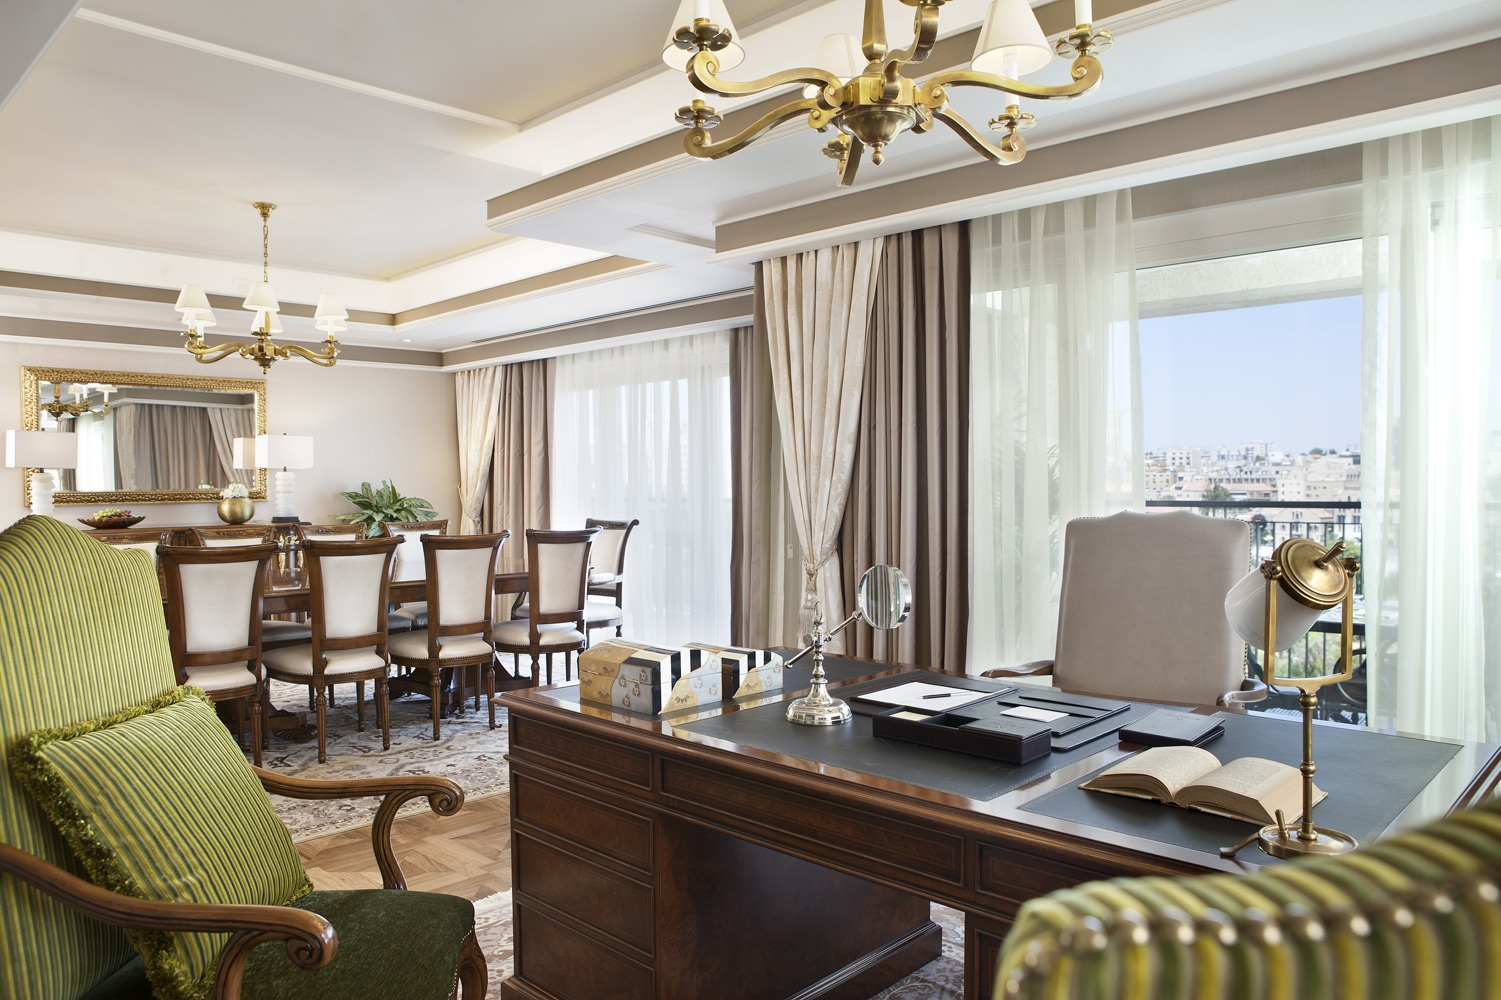 THE PALACE HOTEL WALDORF ASTORIA JERUSALEM